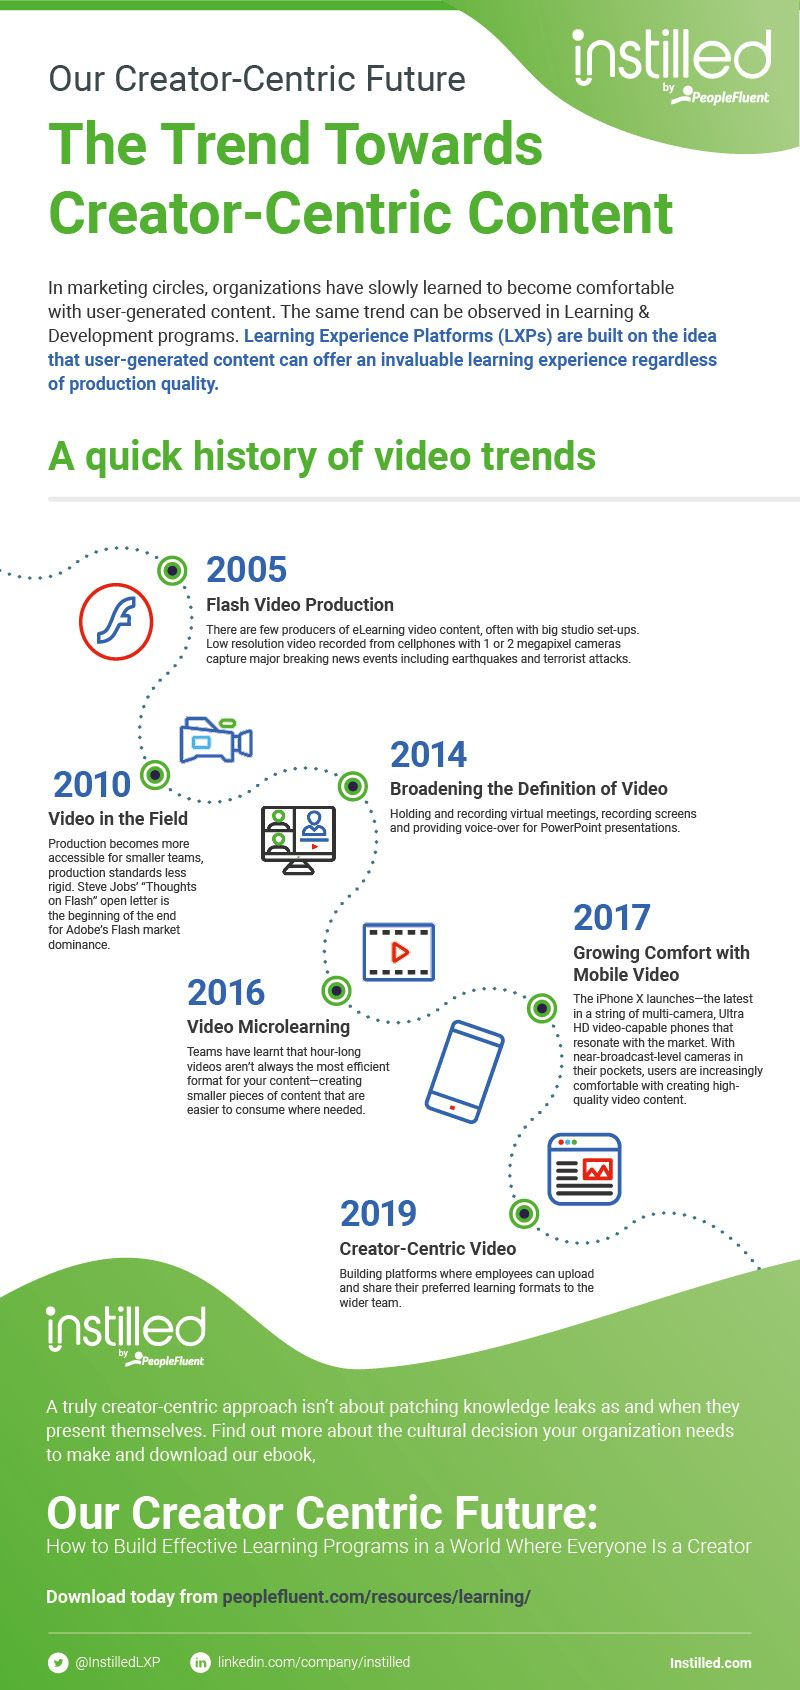 Our Creator Centric Future: The Trend Towards Creator-Centric Content infographic